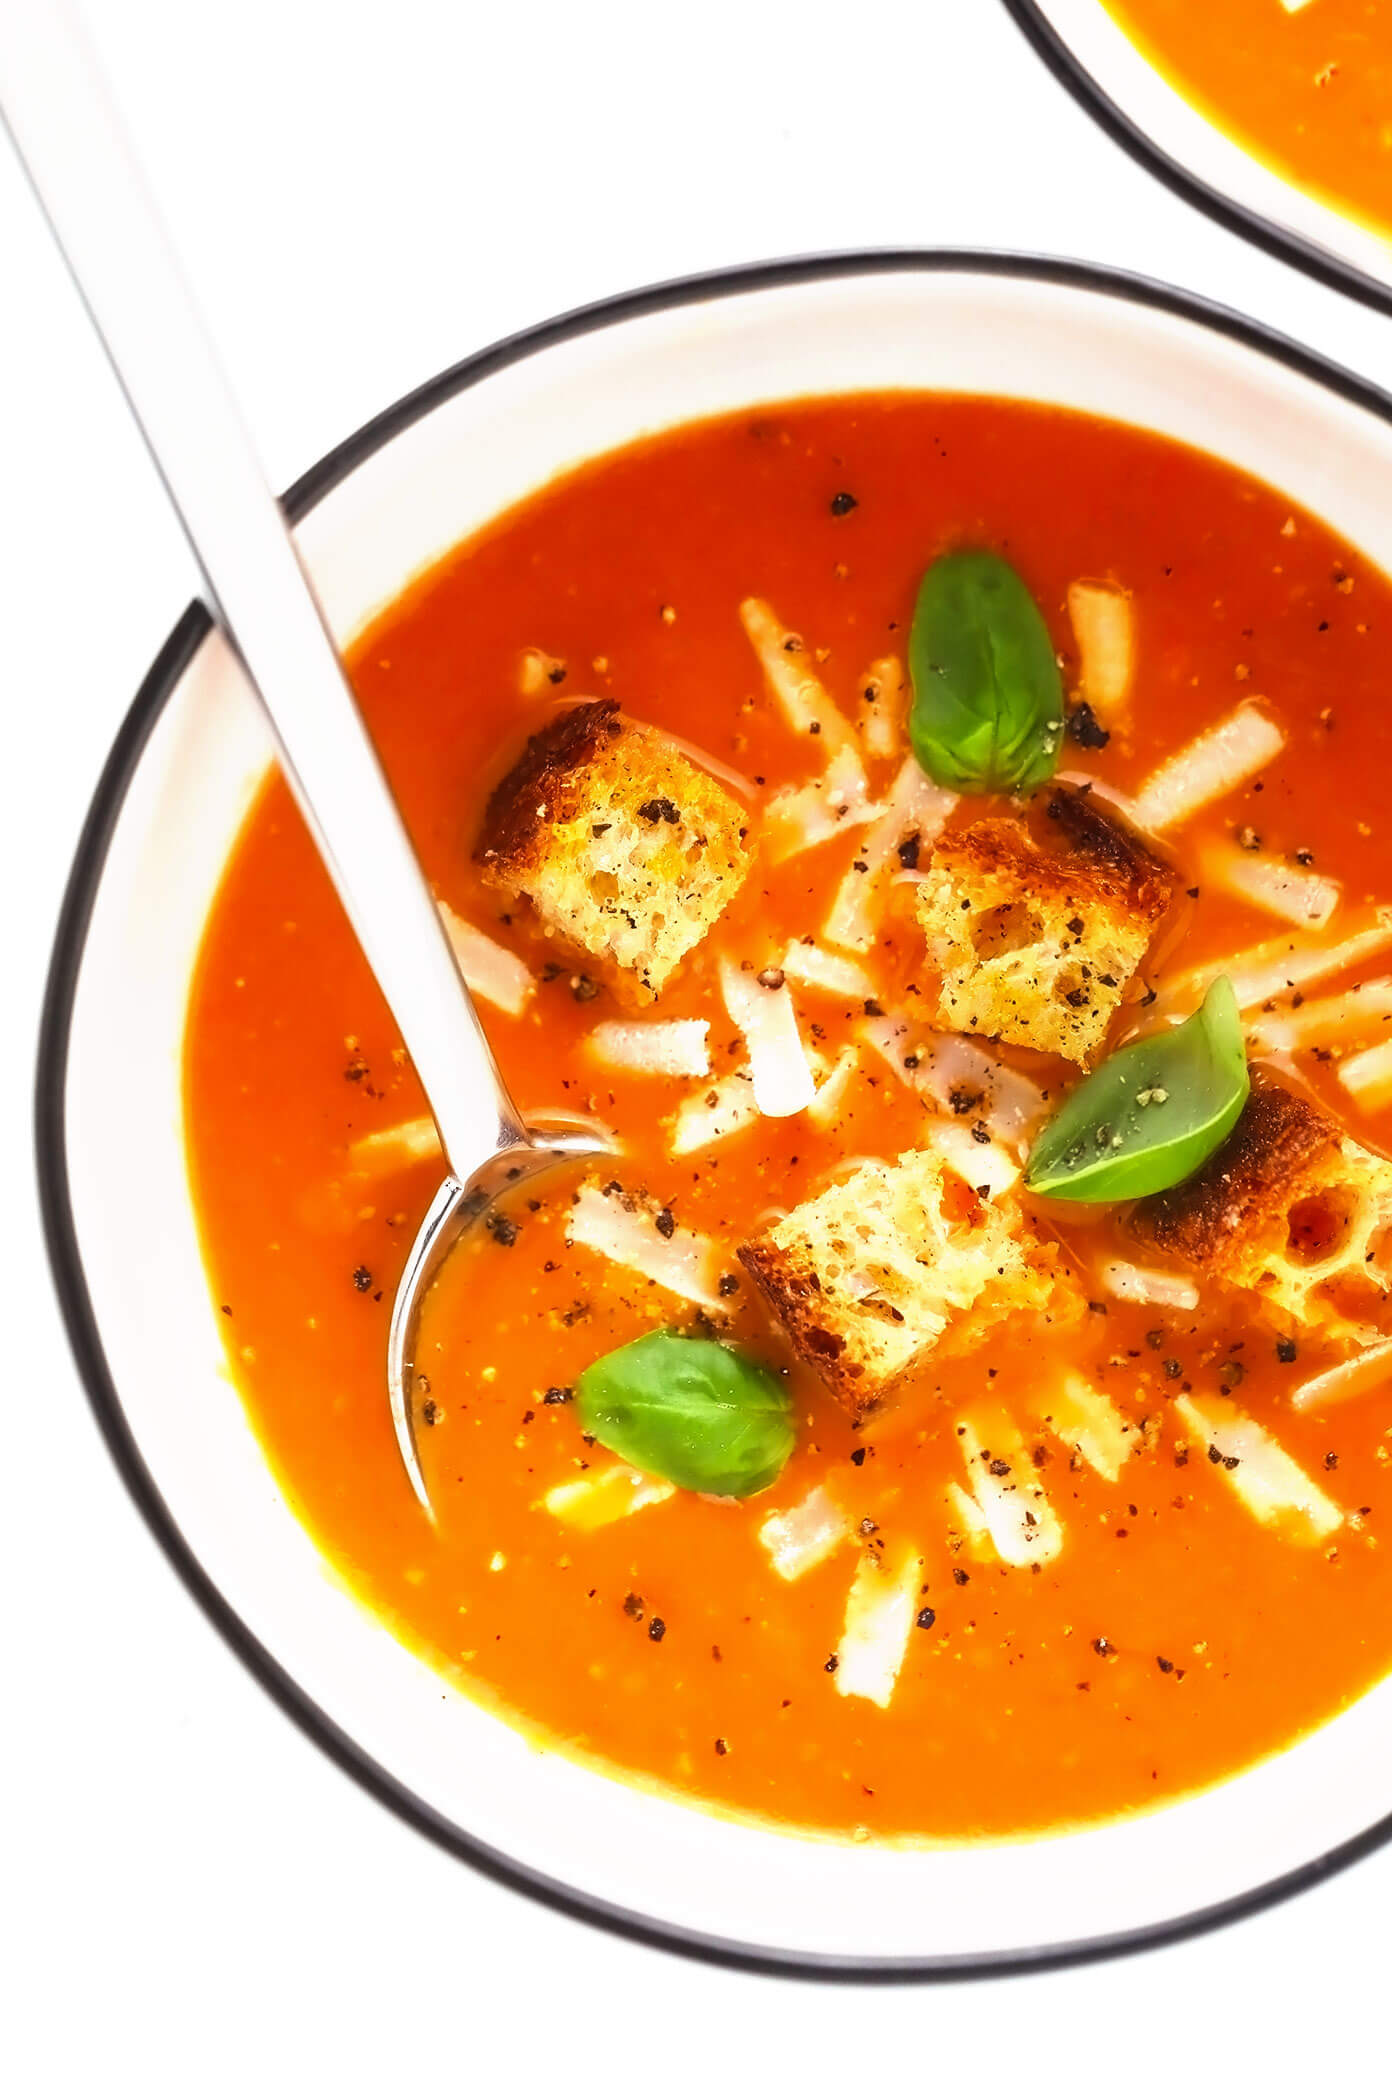 Roasted tomato soup in bowls with Parmesan, croutons and basil